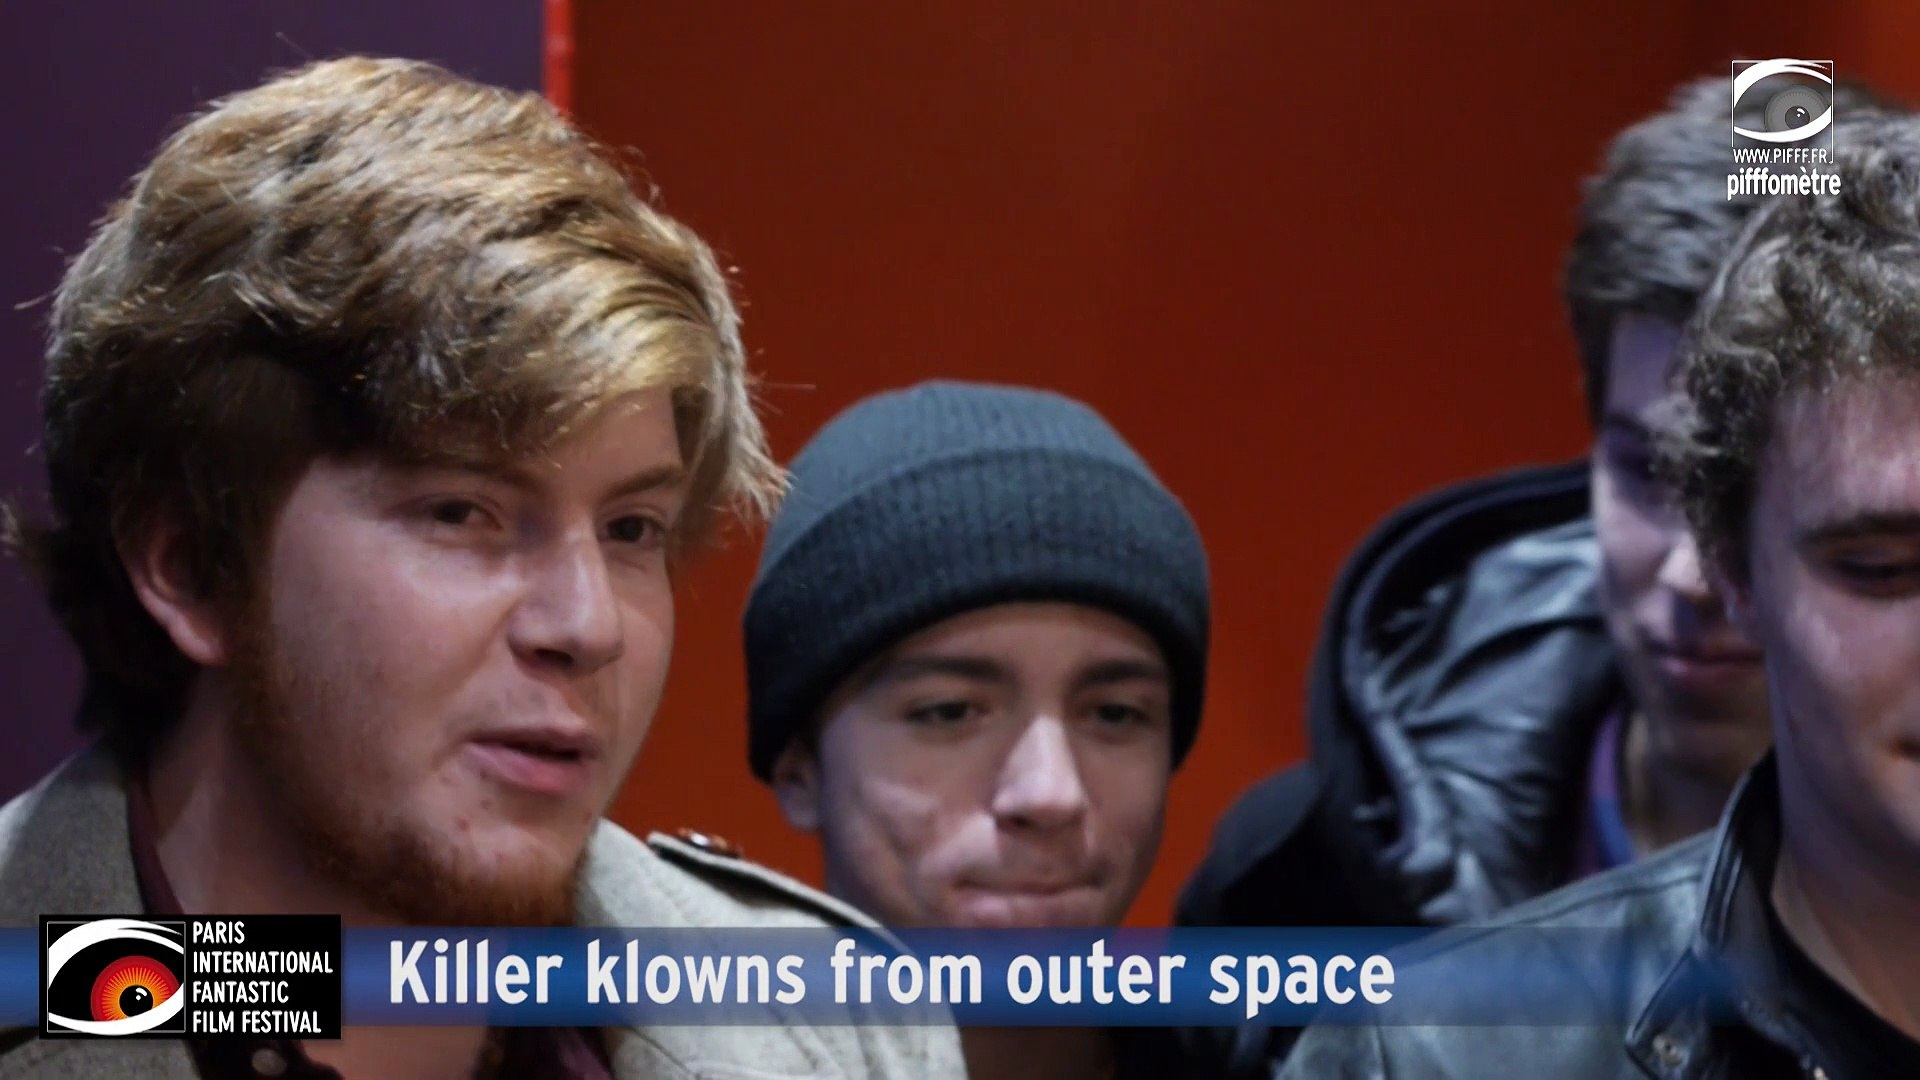 PIFFF 2014 - Killer Klowns from outer space - Avis public